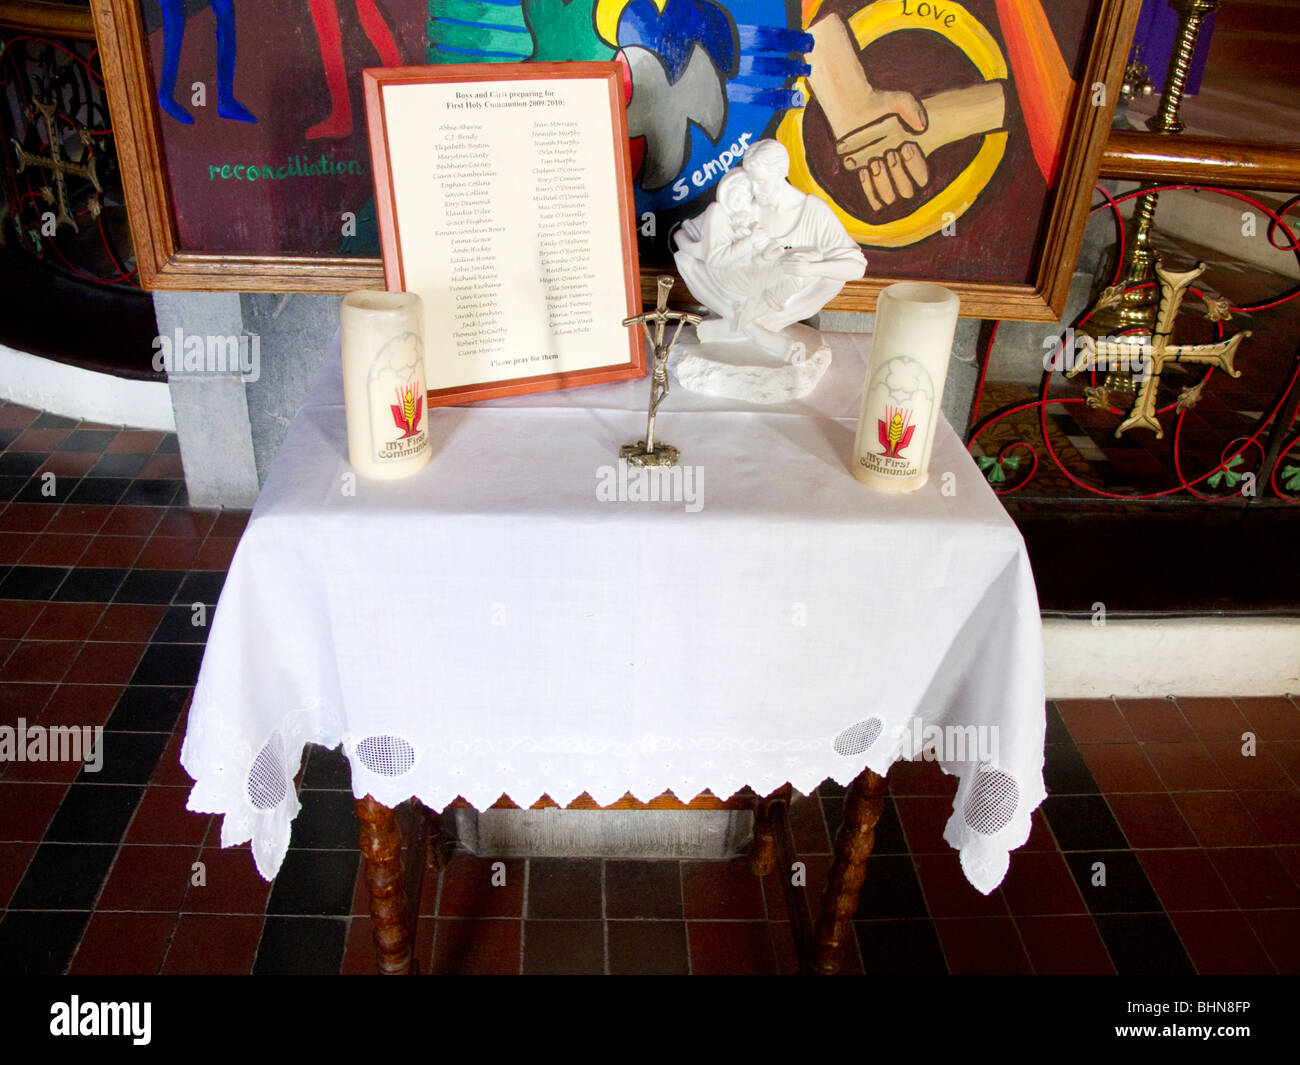 Alamy & Communion Table Stock Photos \u0026 Communion Table Stock Images - Alamy